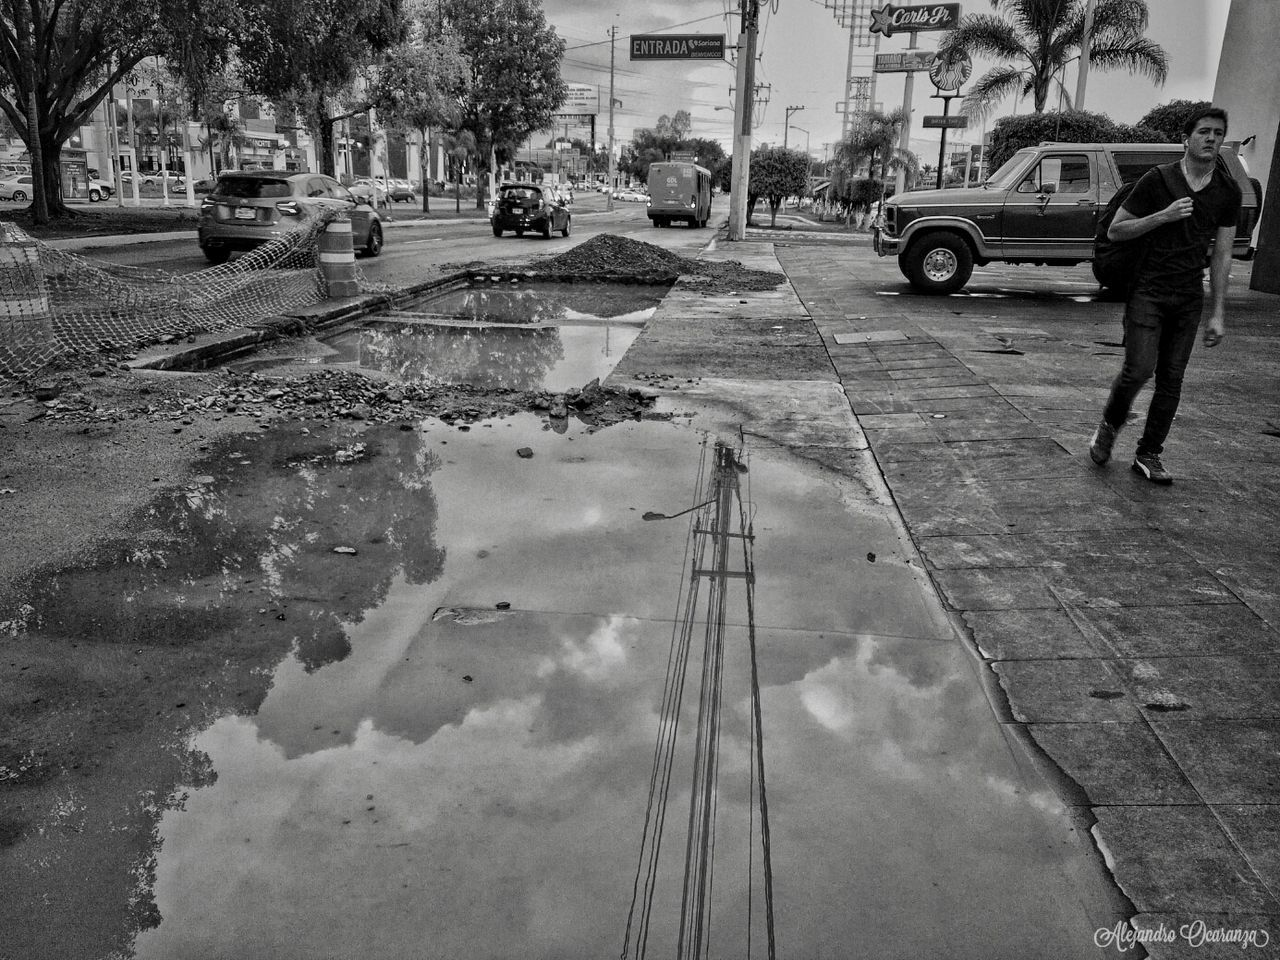 Días de Lluvia Street Urban City Men Water Architecture Blackandwhitephotography Black And White Photography Blsckandwhite B&w Black & White Blake_and_white One Person Day Mexico Photos Guadalajara Jalisco Photography Guadalajara Photo Photographie  First Eyeem Photo Real People Photographer People